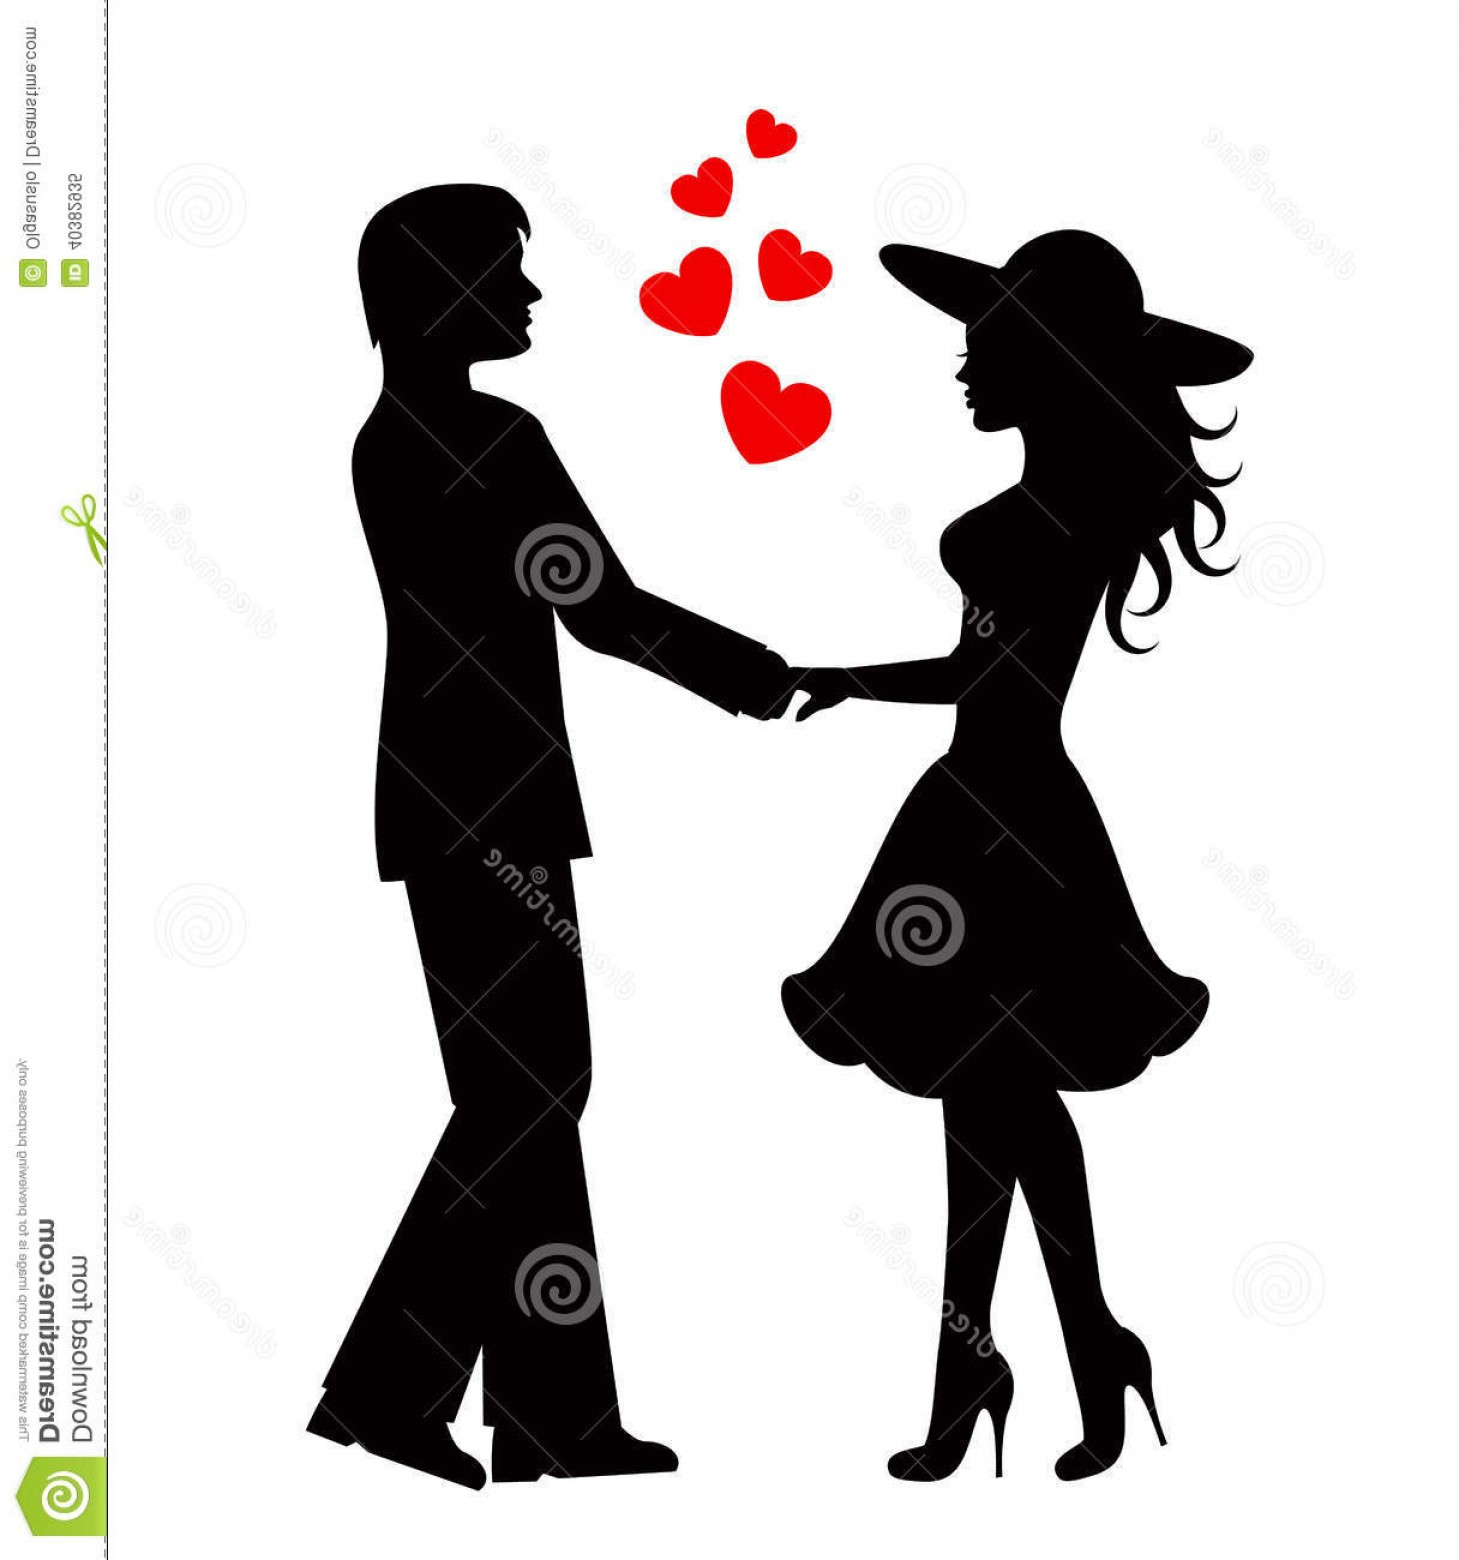 Vector Silhouette Love: Royalty Free Stock Photo Couple People Love Silhouettes Loving Black Against White Background Image